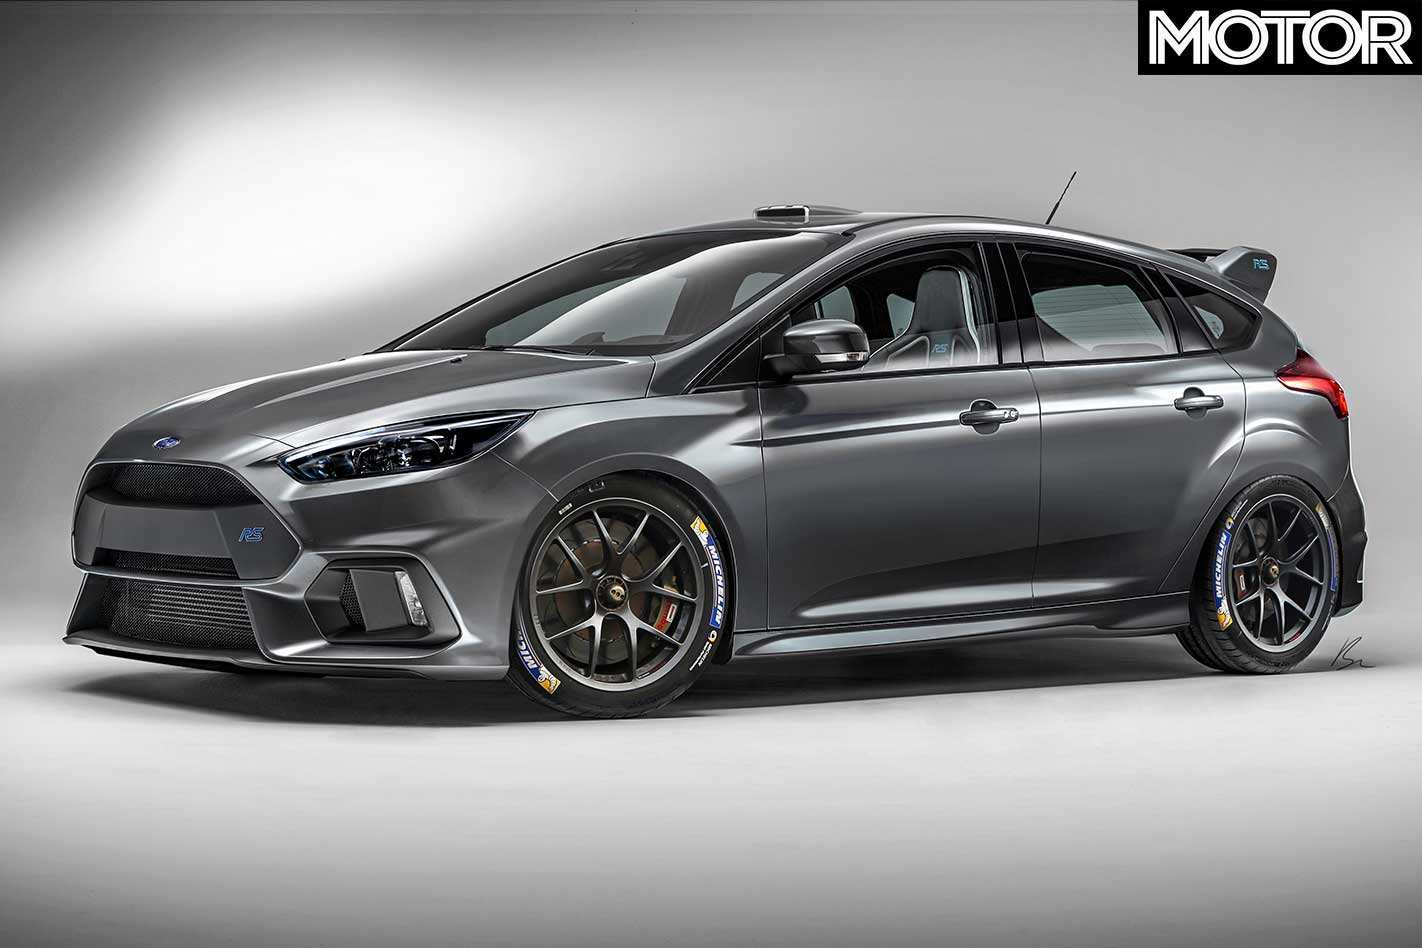 50 Great 2020 Ford Focus Rs St Pricing with 2020 Ford Focus Rs St